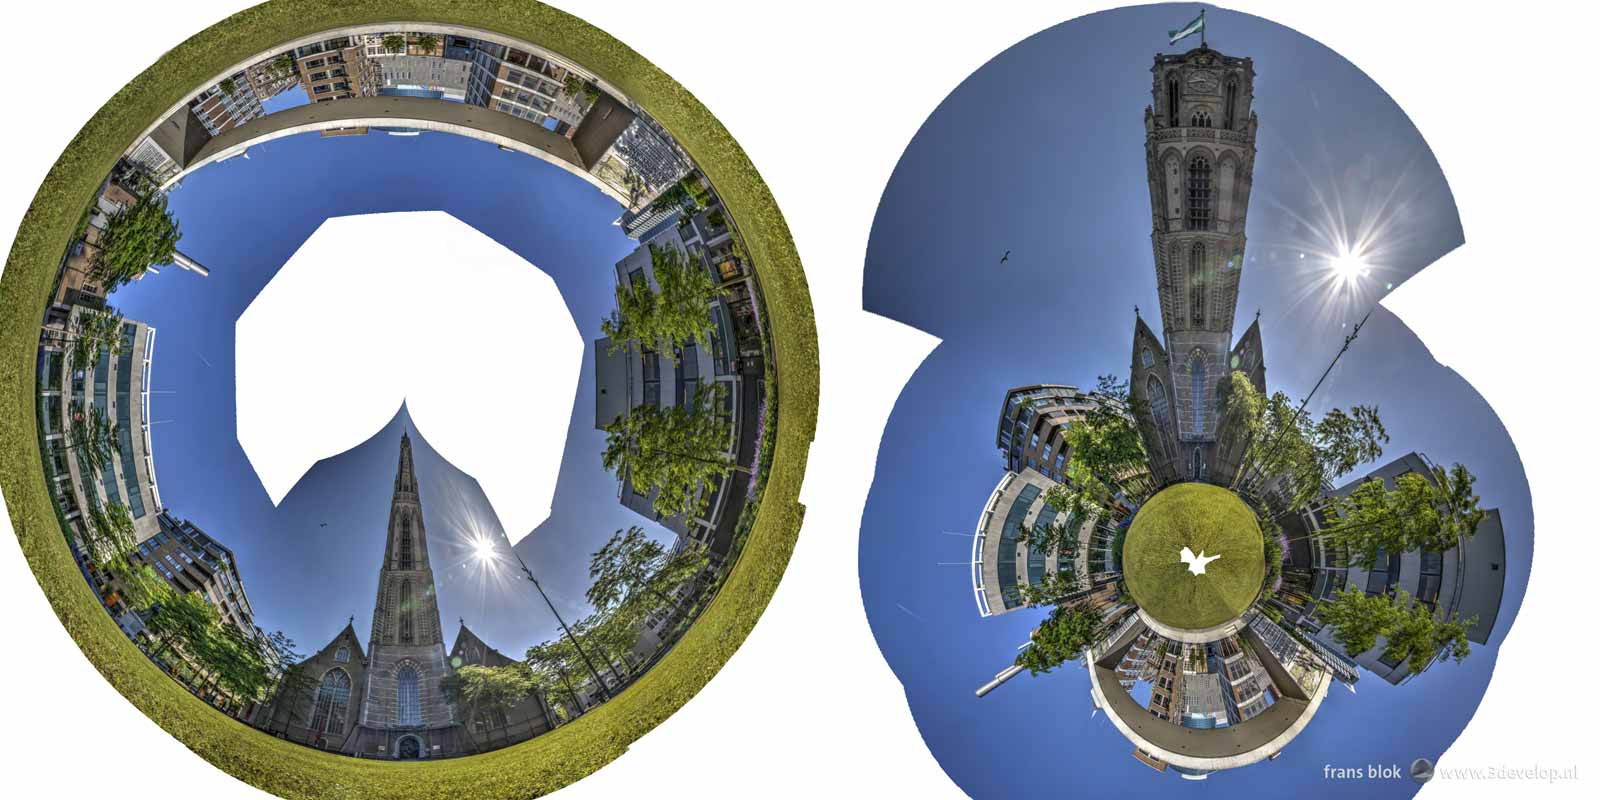 Rough versions of a tubular and spherical panorama of the park near Saint-Lawrence's Church in Rotterdam